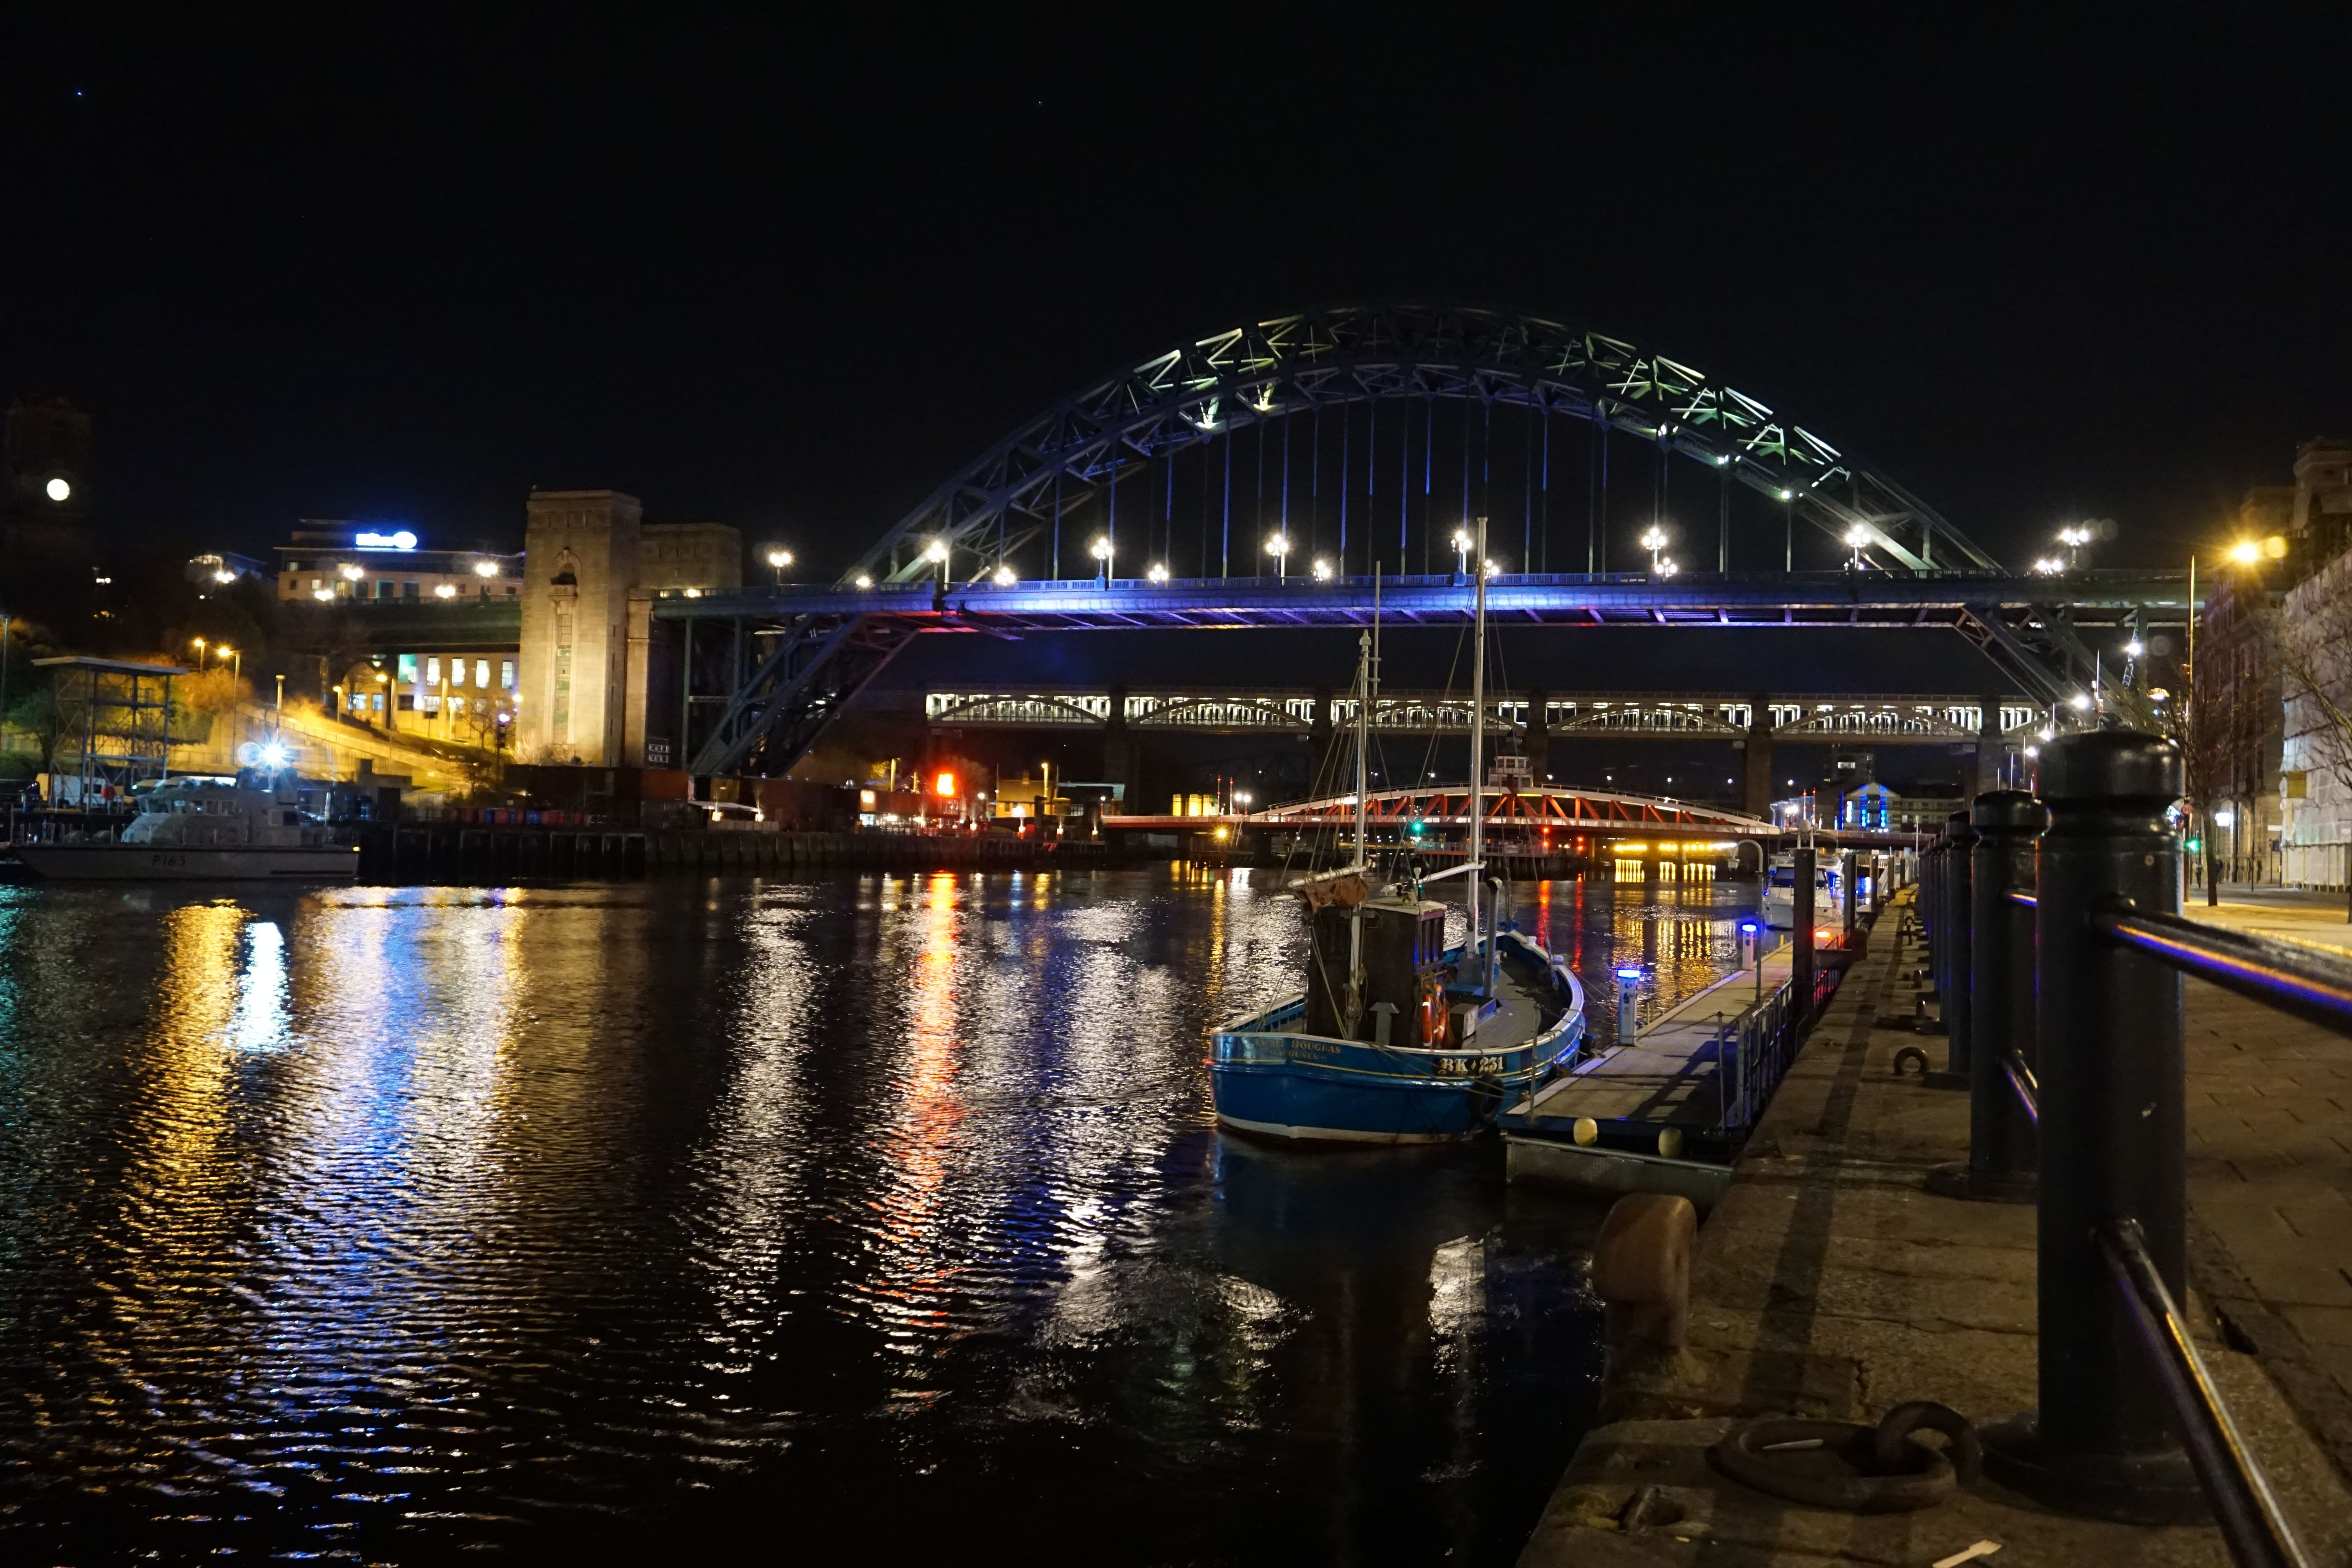 A small boat is moored in the River Tyne at night, the background has the Tyne Bridge. Lights are reflected in the water.